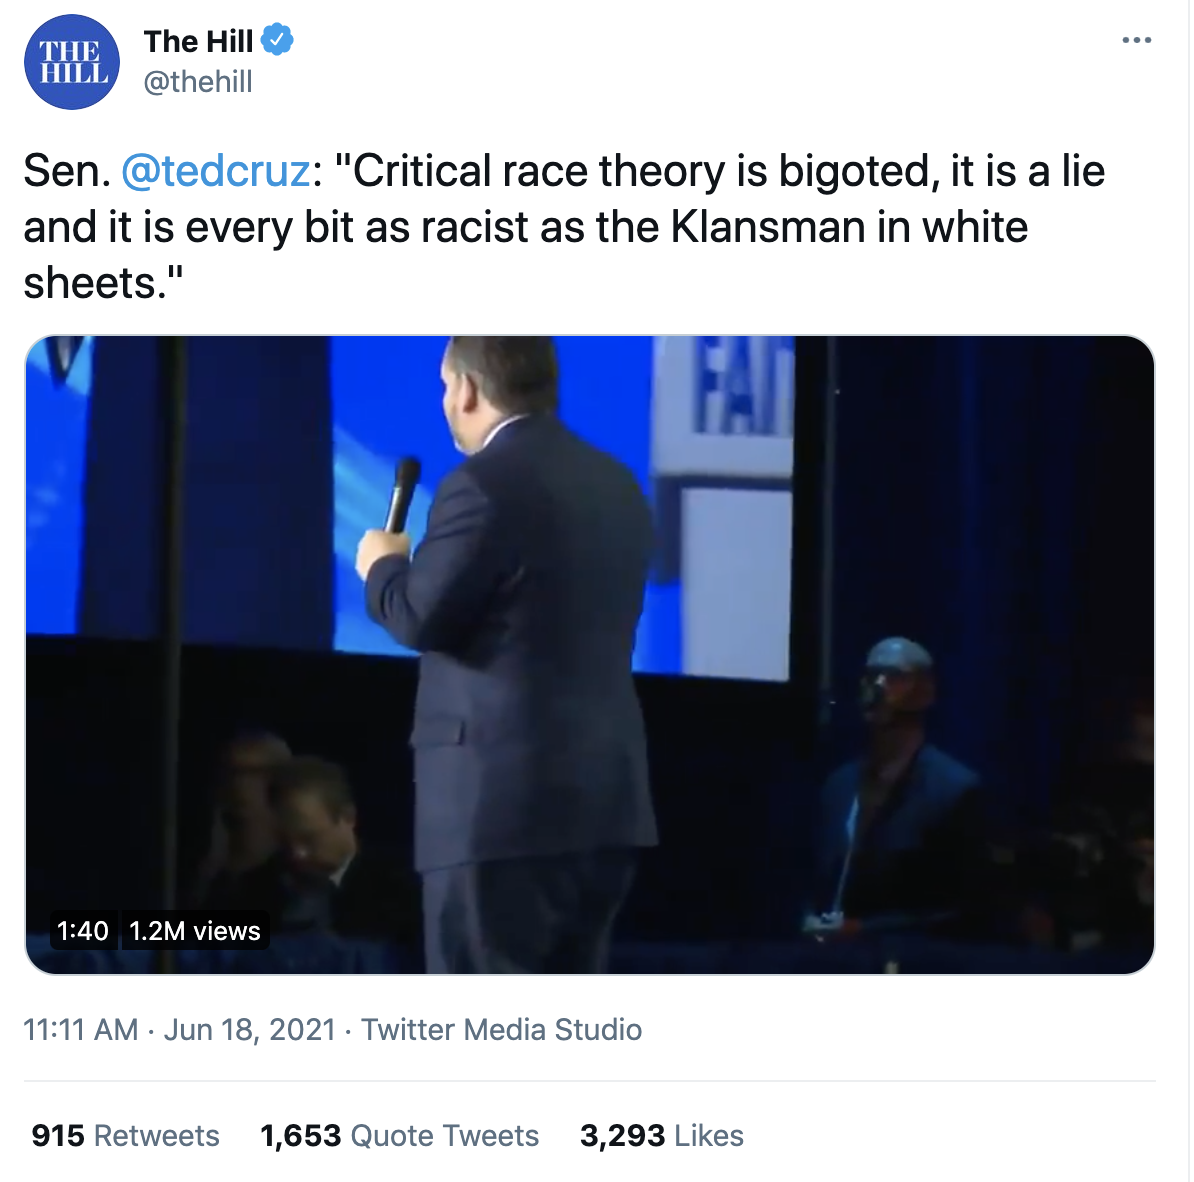 The Hill Twitter Page